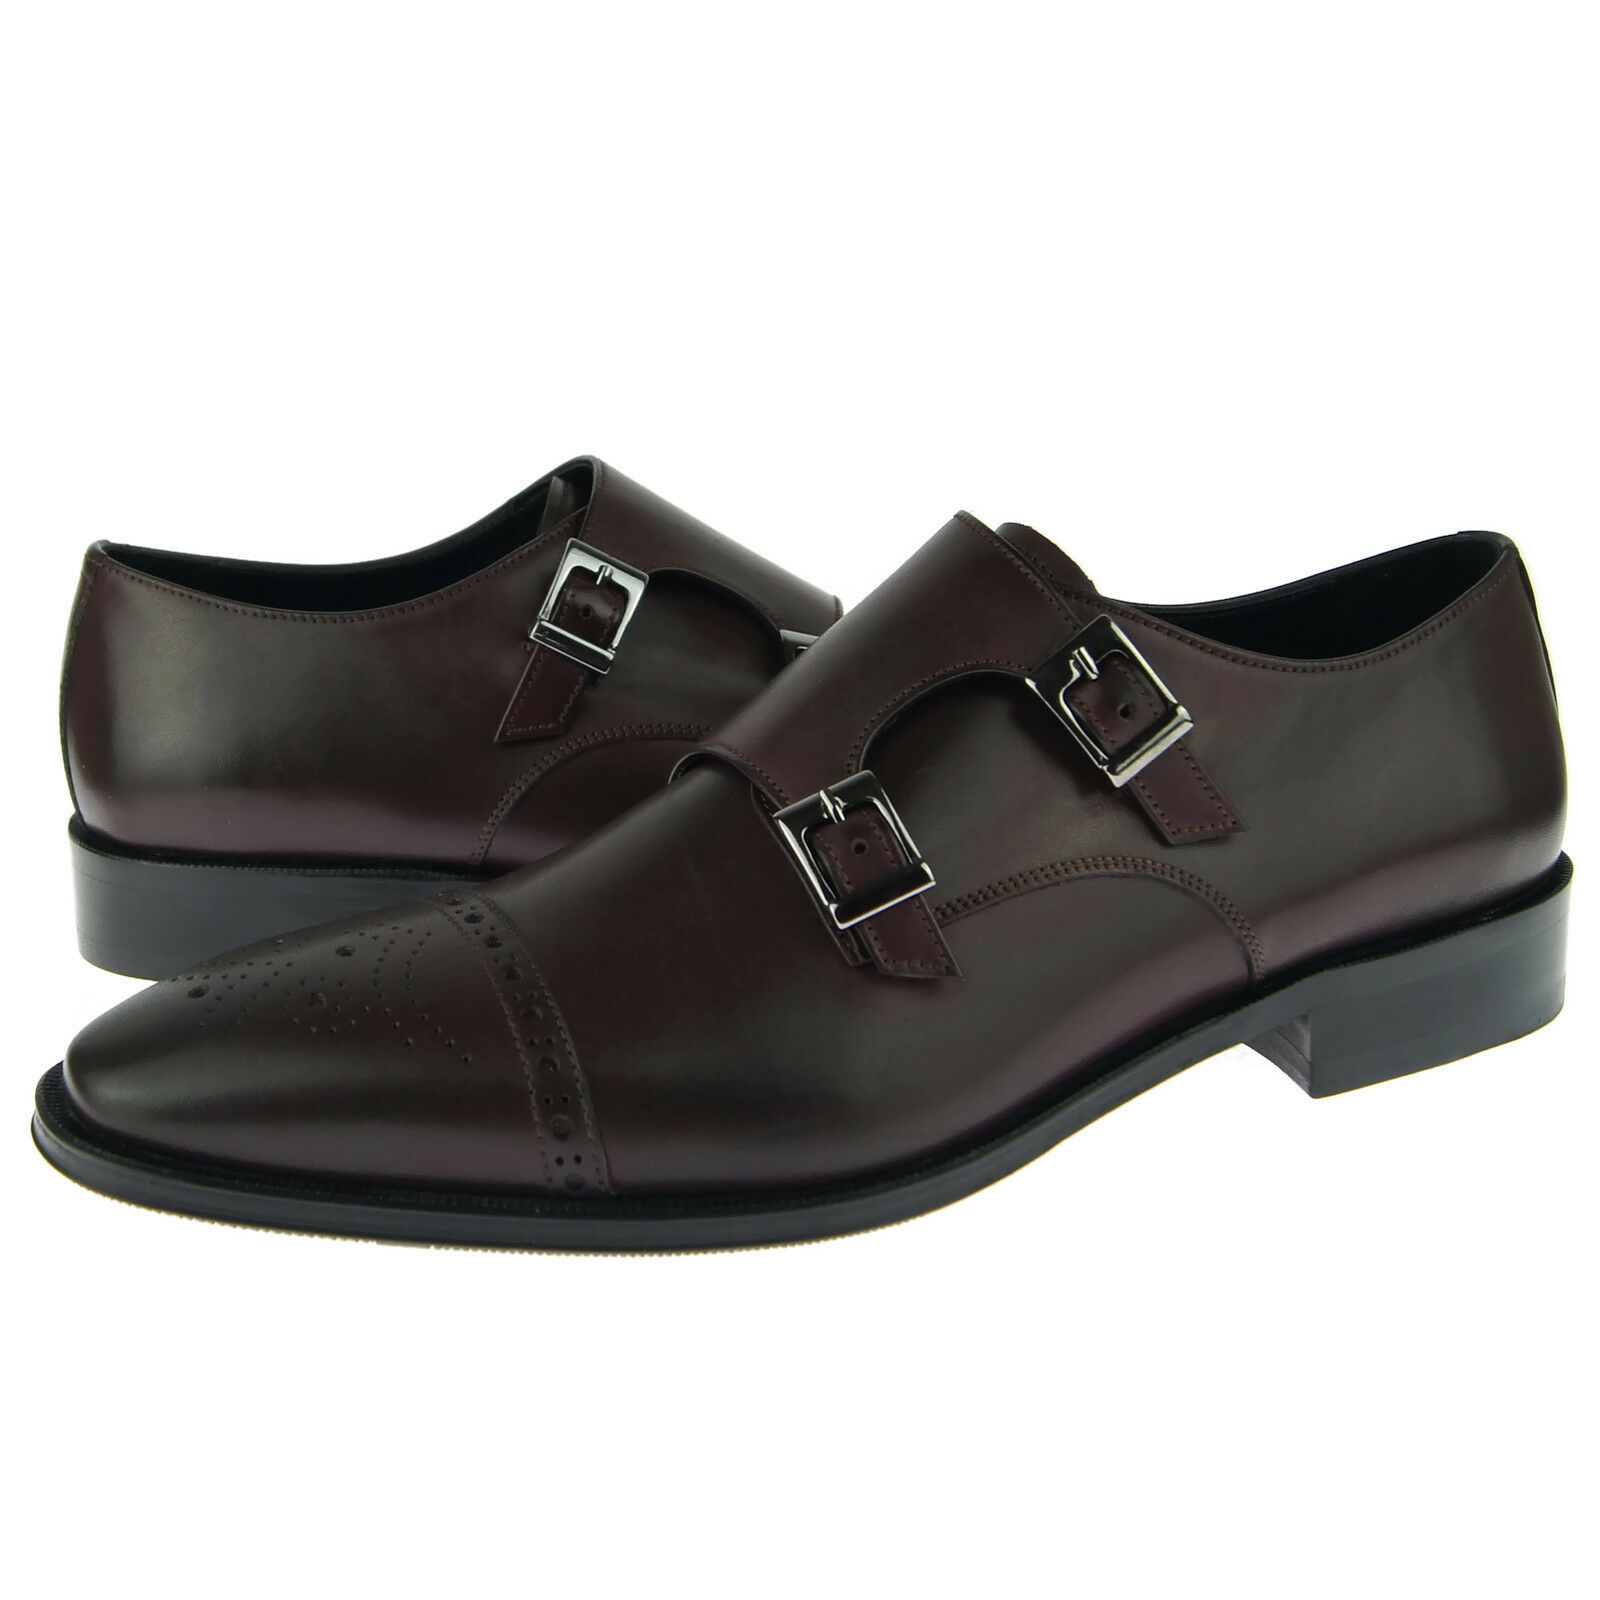 Alex D   Cleveland   Cappello Punta Monk, hombres Abito zapatos in pelle, Burgundy